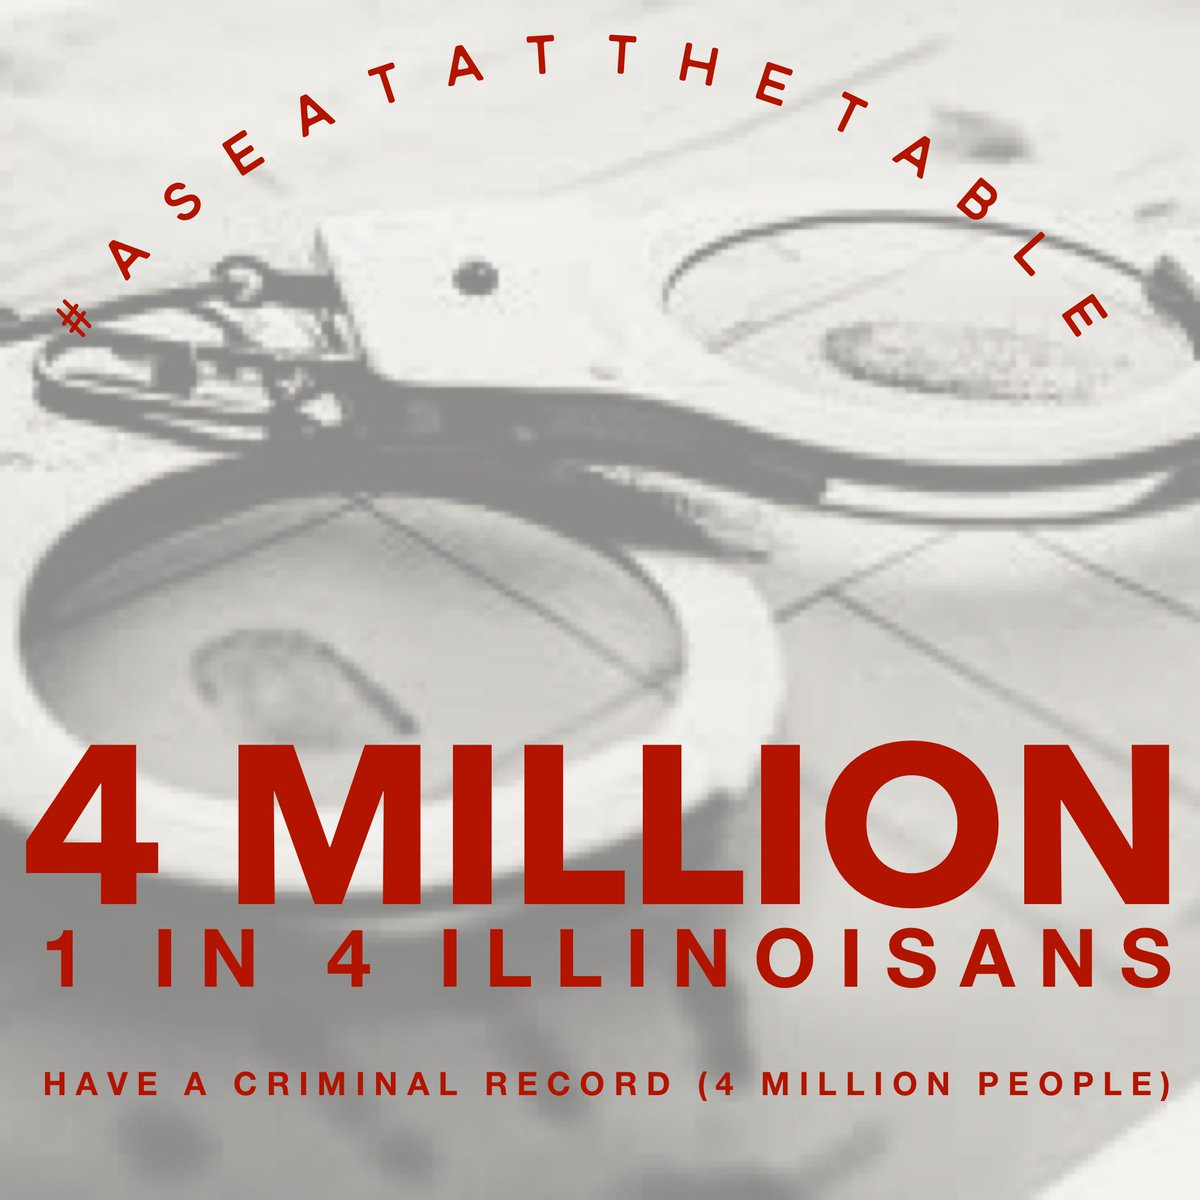 test Twitter Media - #4million #criminaljusticereform #educationoverincarceration #aseatatthetable https://t.co/Ws6Xrtojbo